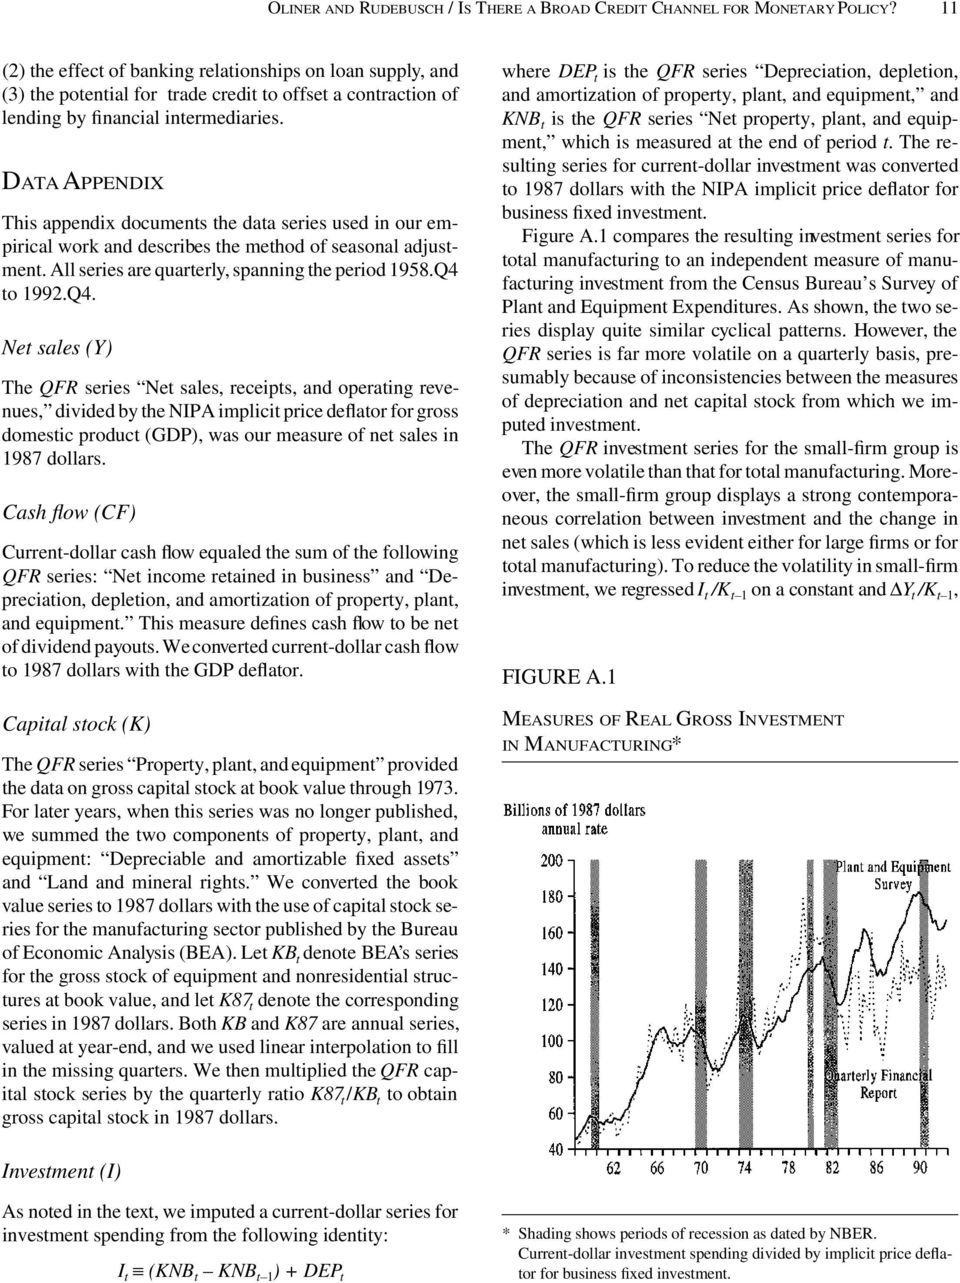 DATA APPENDIX This appendix documents the data series used in our empirical work and describes the method of seasonal adjustment. All series are quarterly, spanning the period 1958.Q4